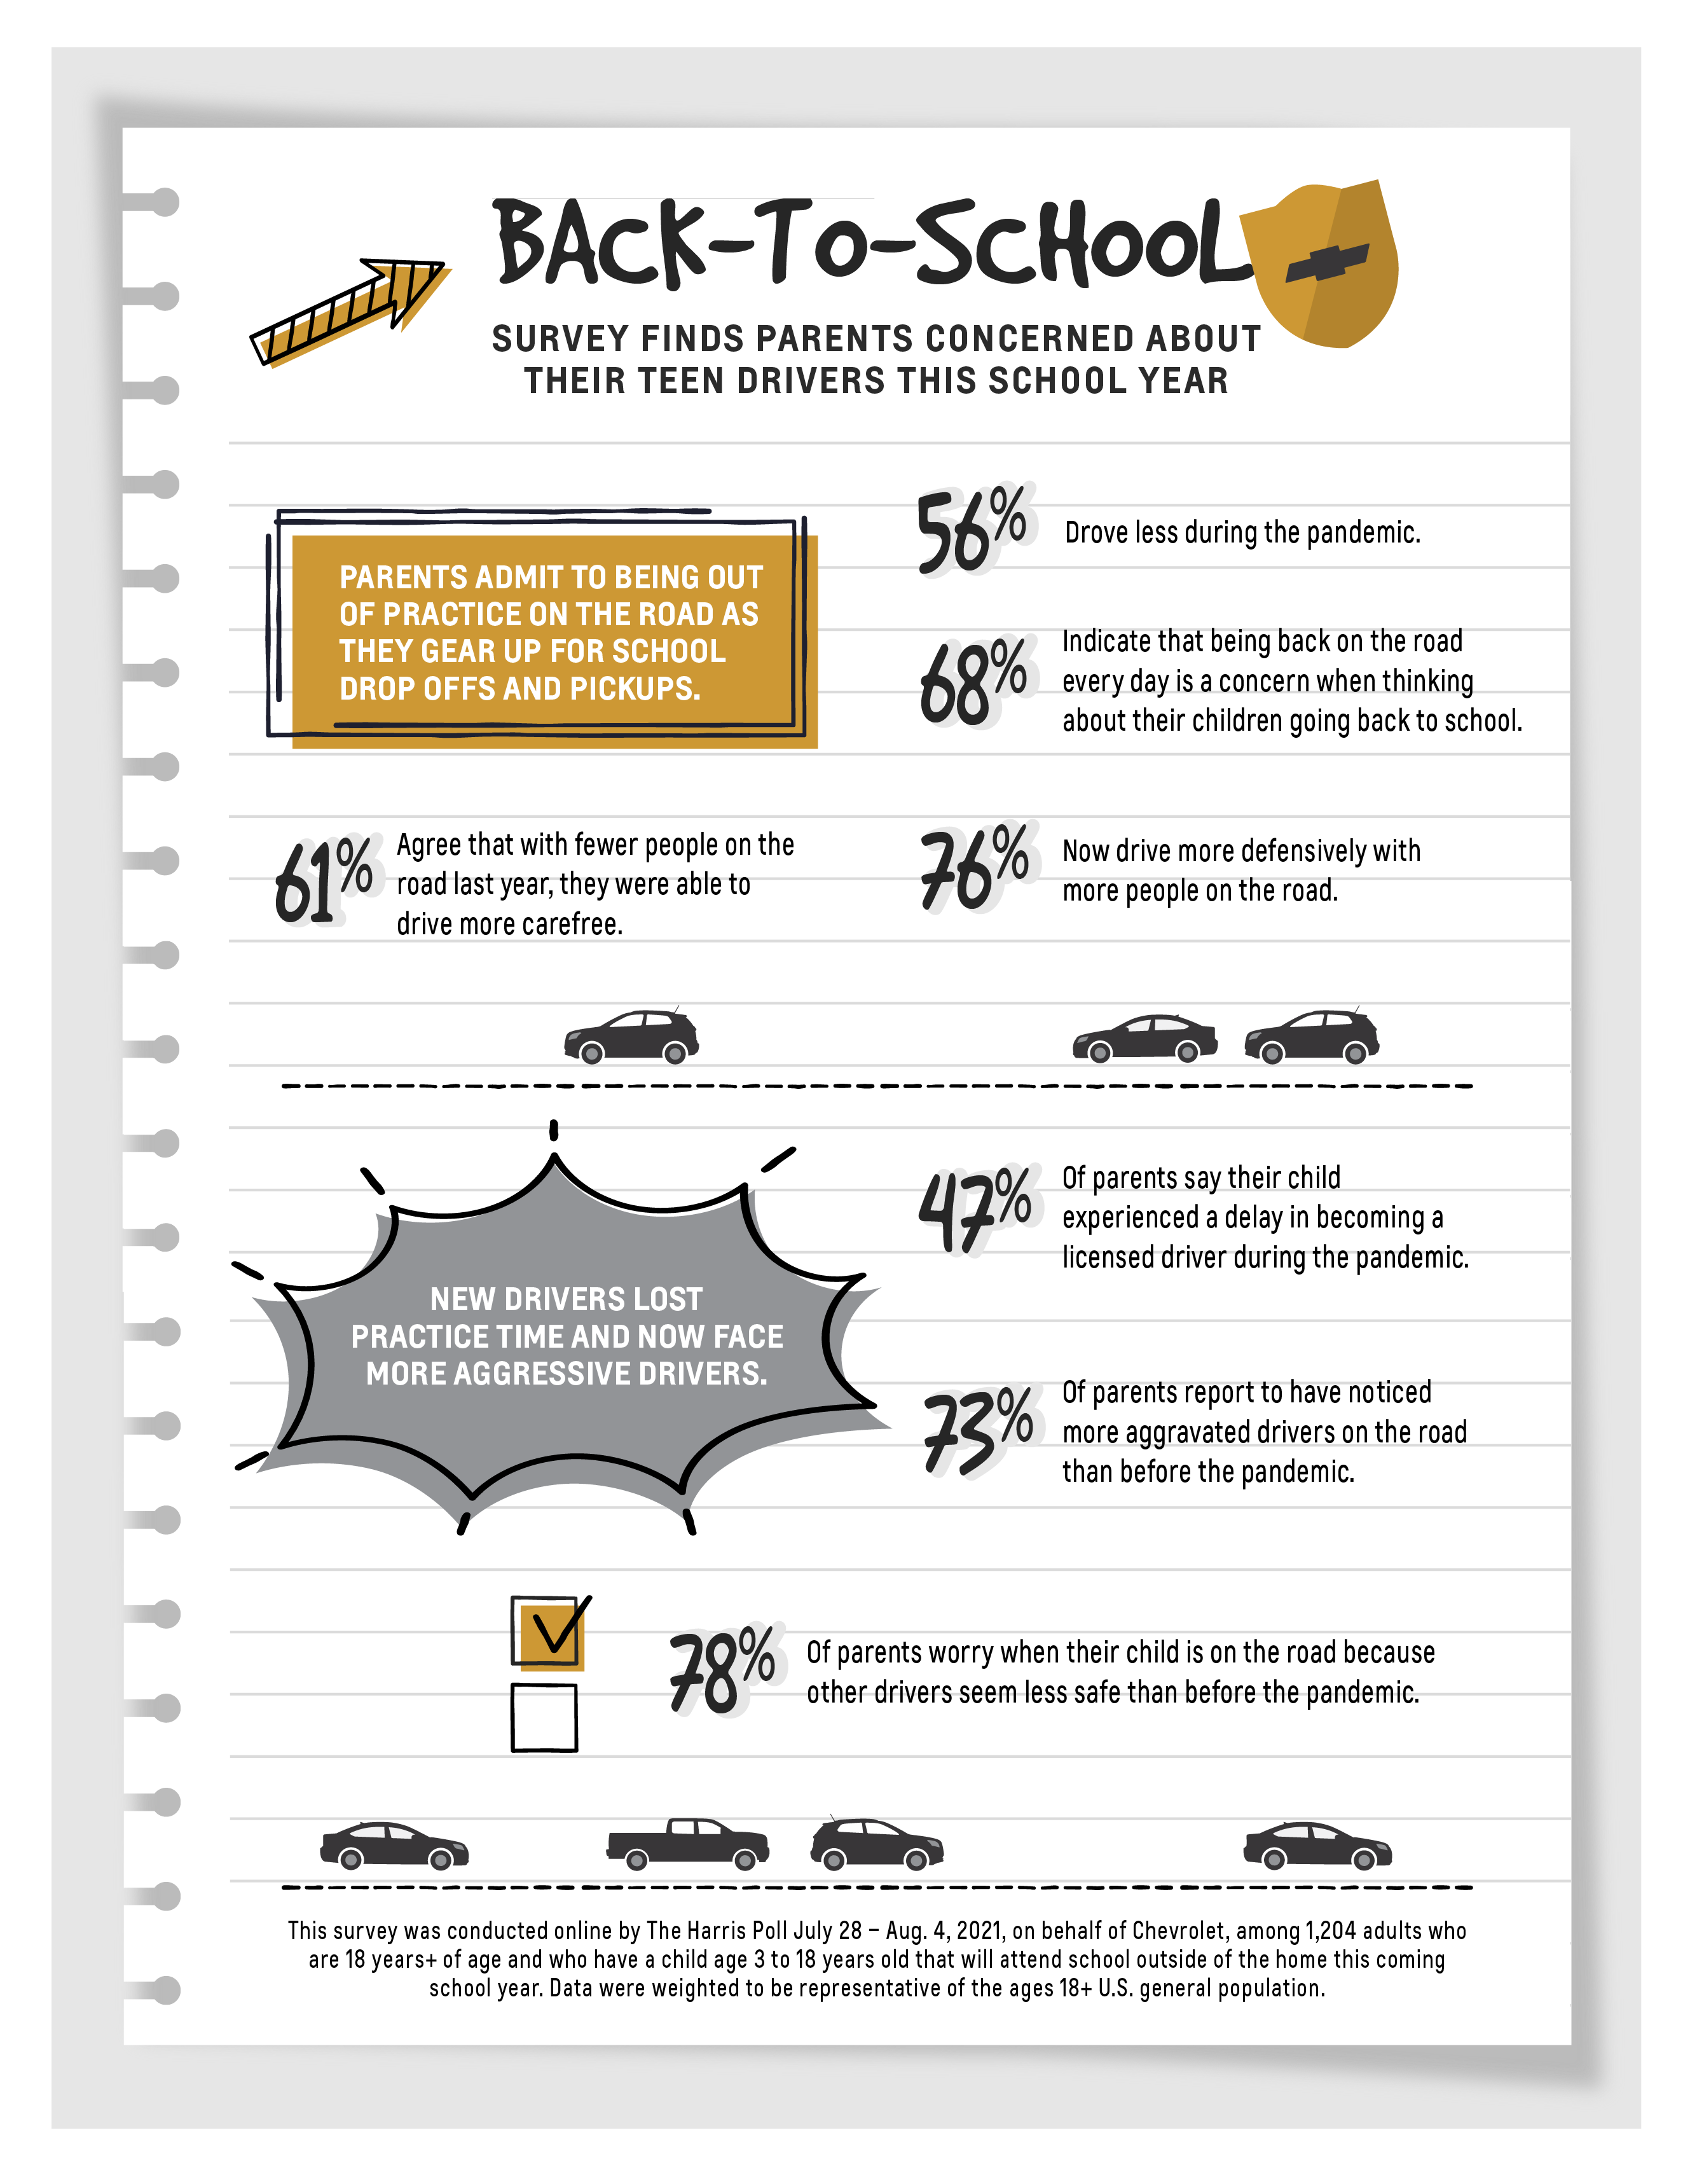 Chevy_BTS_Infographic_English